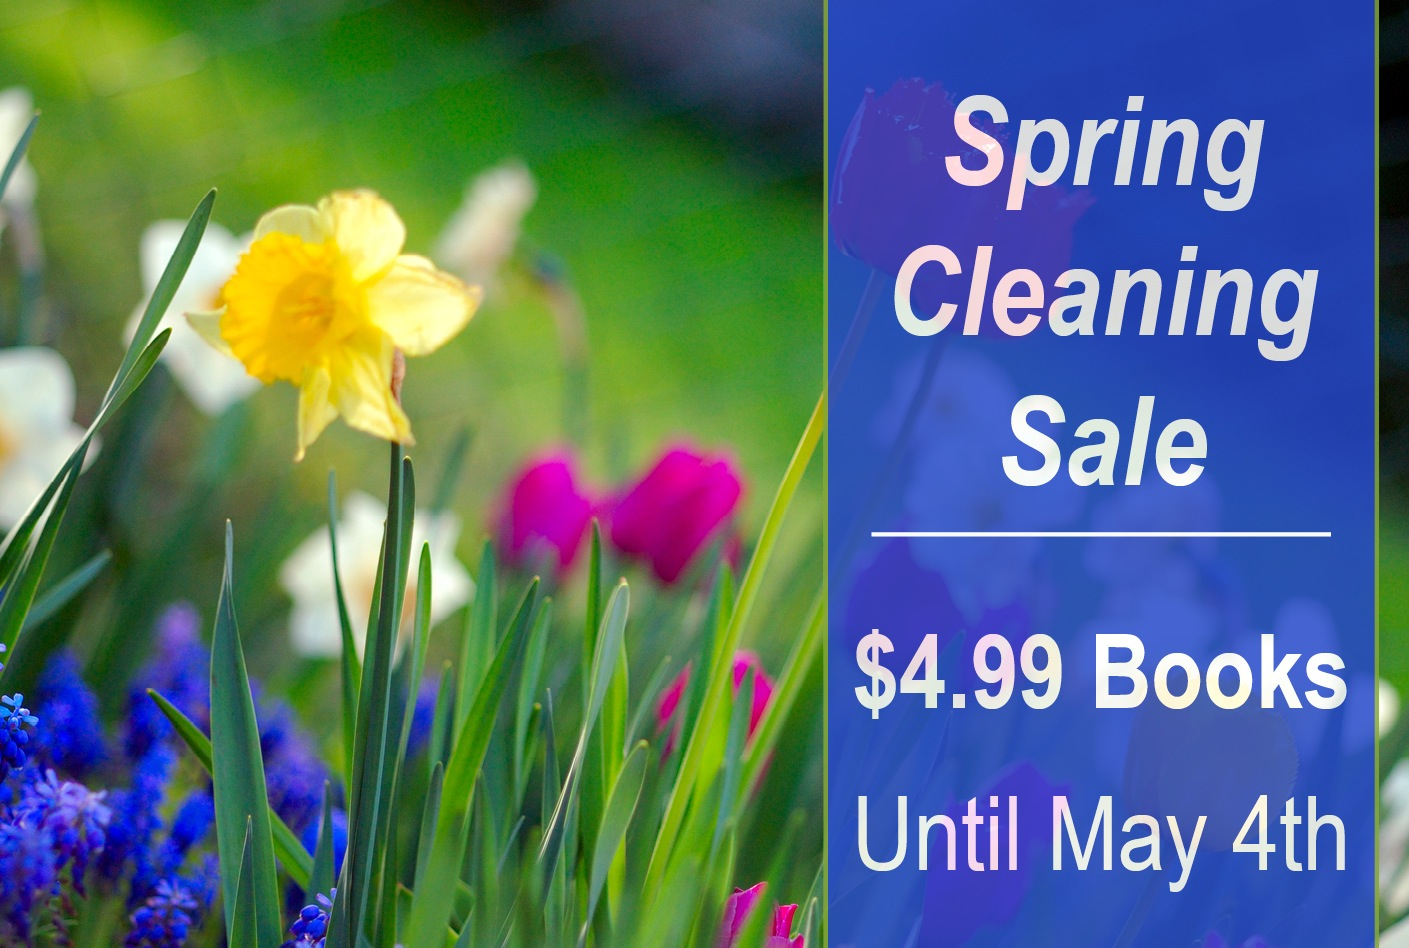 Spring Cleaning Sale: $4.99 Books